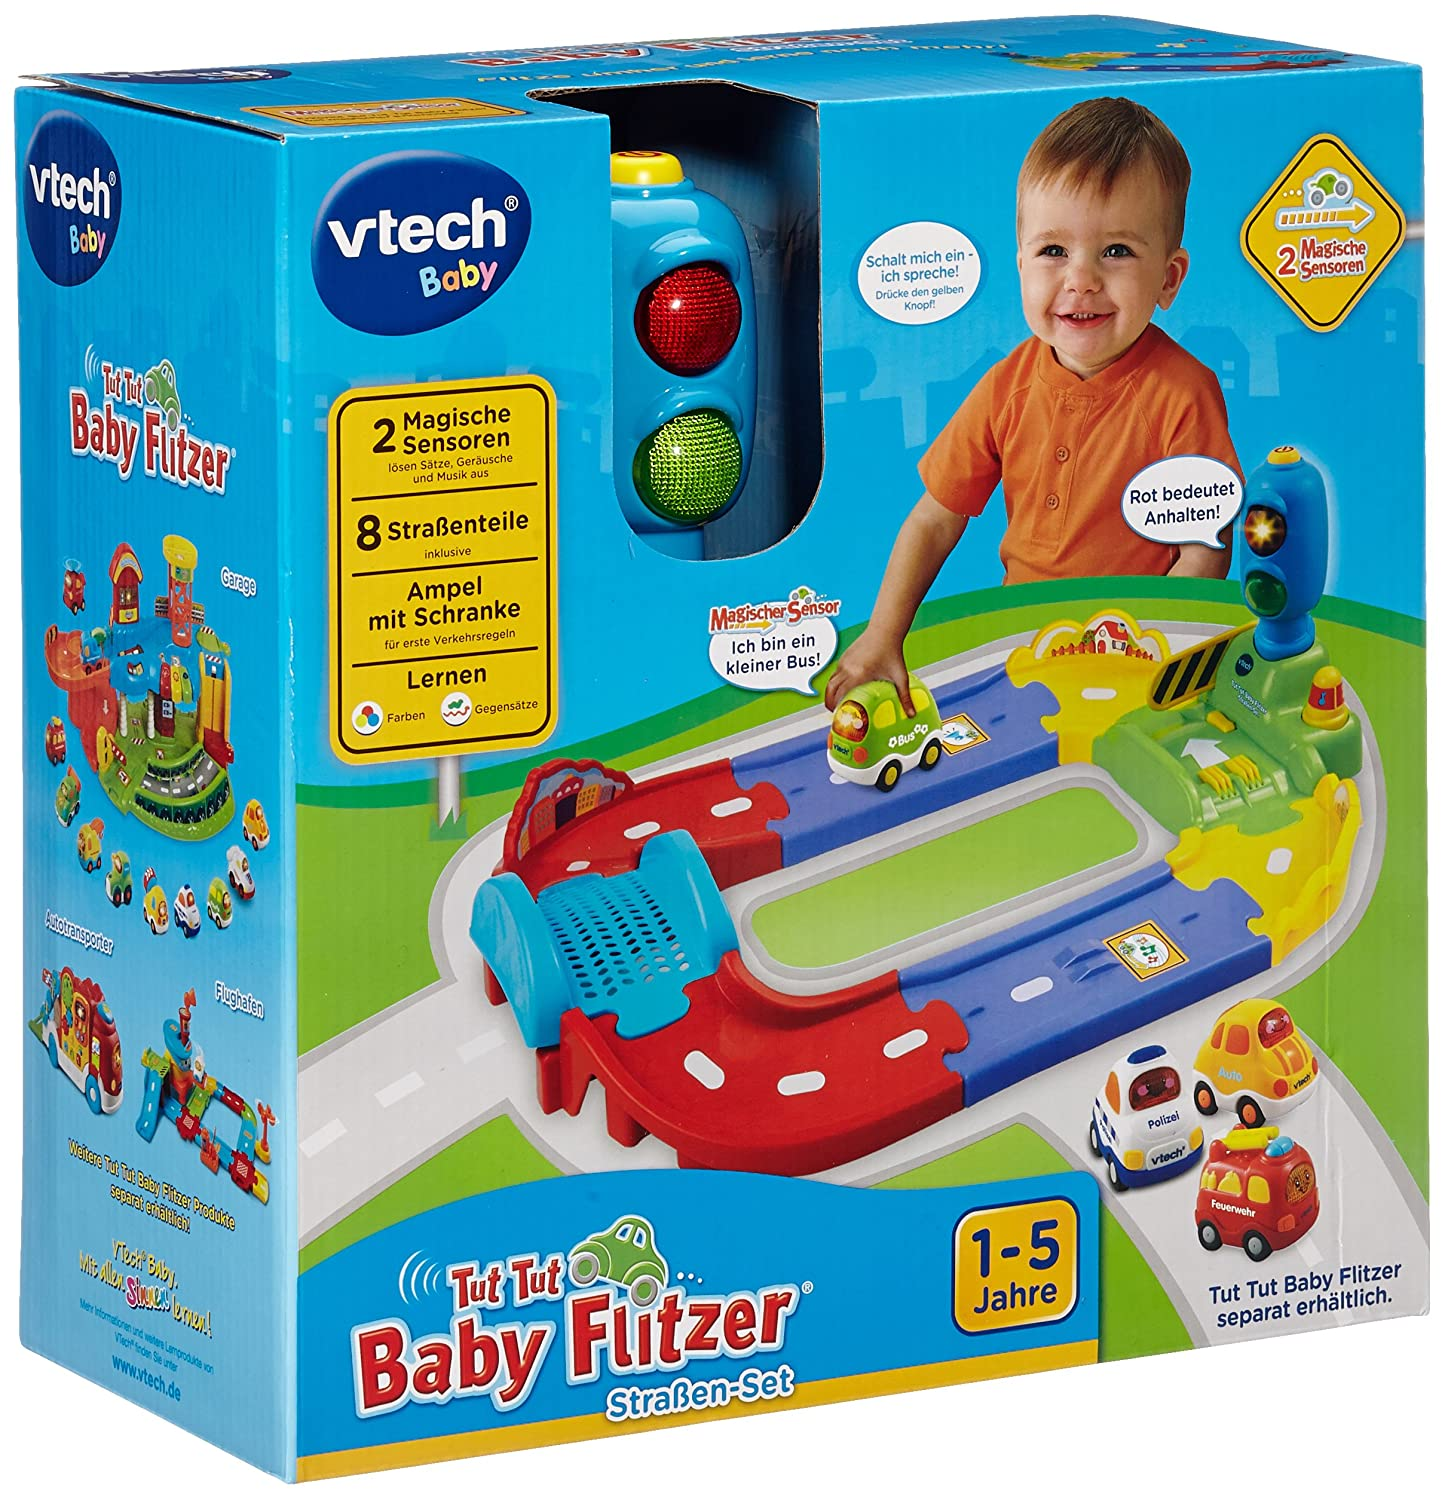 vtech baby 80 127804 tut tut baby flitzer stra en set ebay. Black Bedroom Furniture Sets. Home Design Ideas